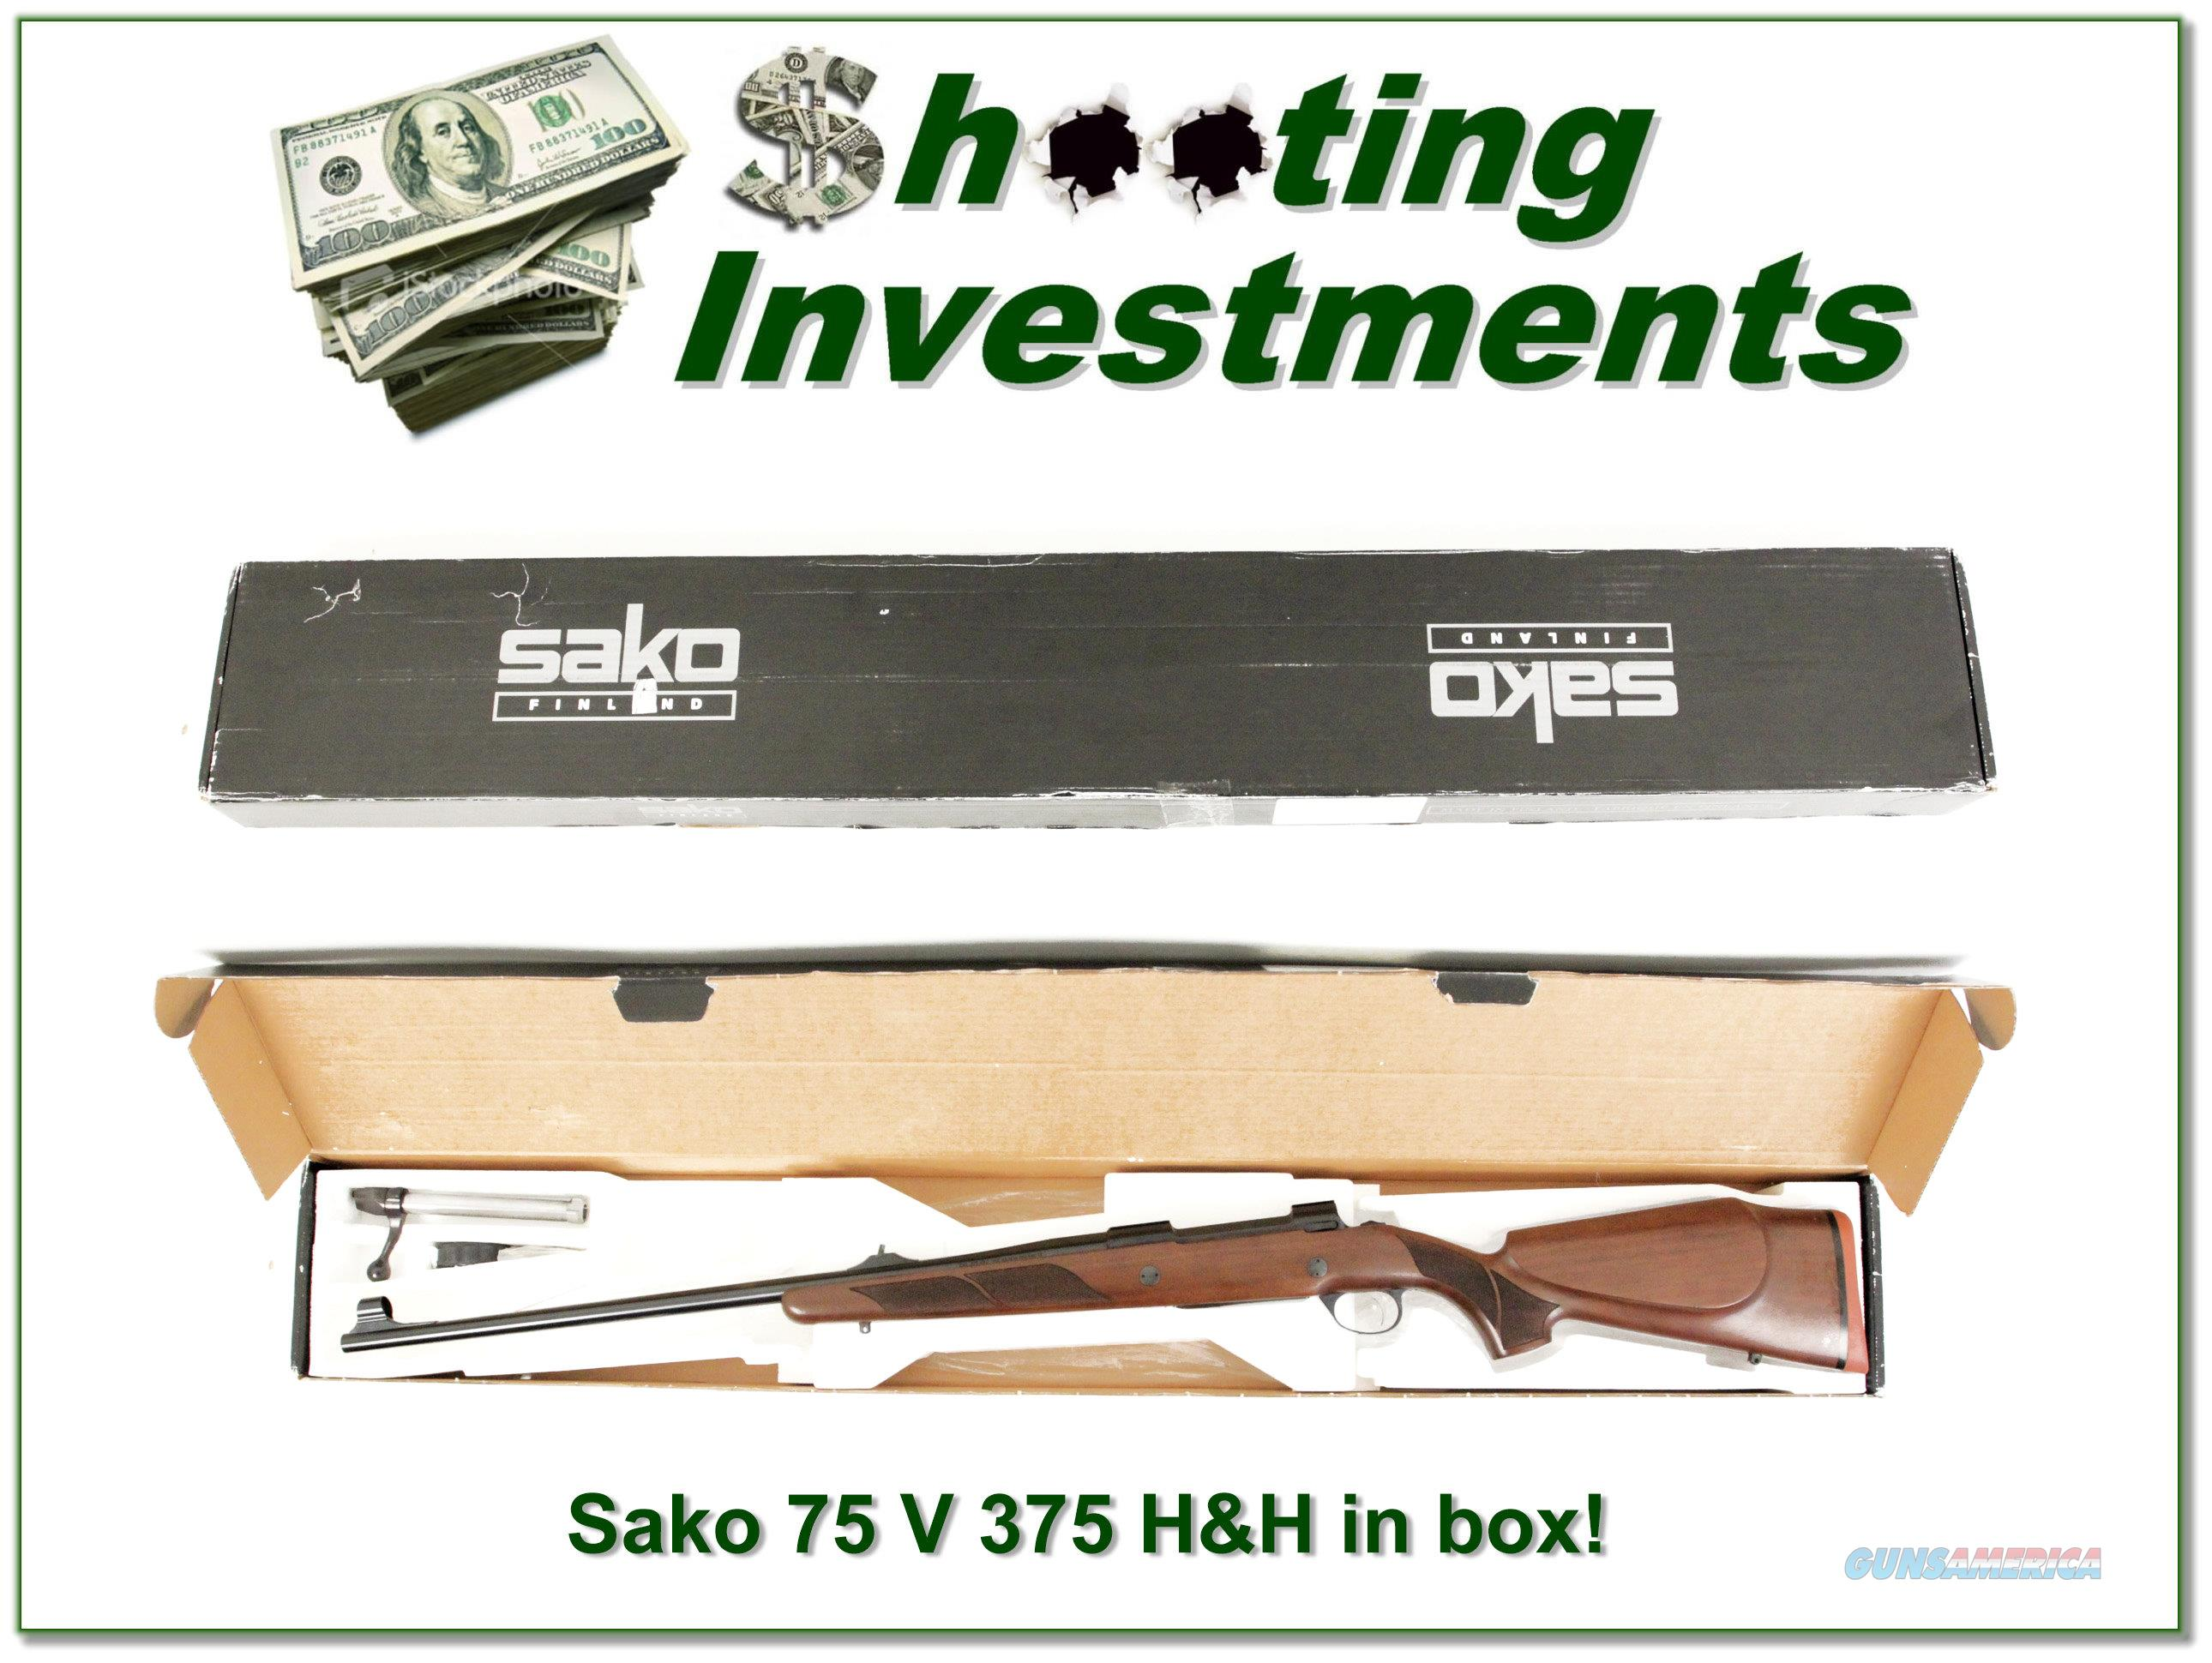 Sako 75 in 375 H&H near new in box!  Guns > Rifles > Sako Rifles > M75 Series